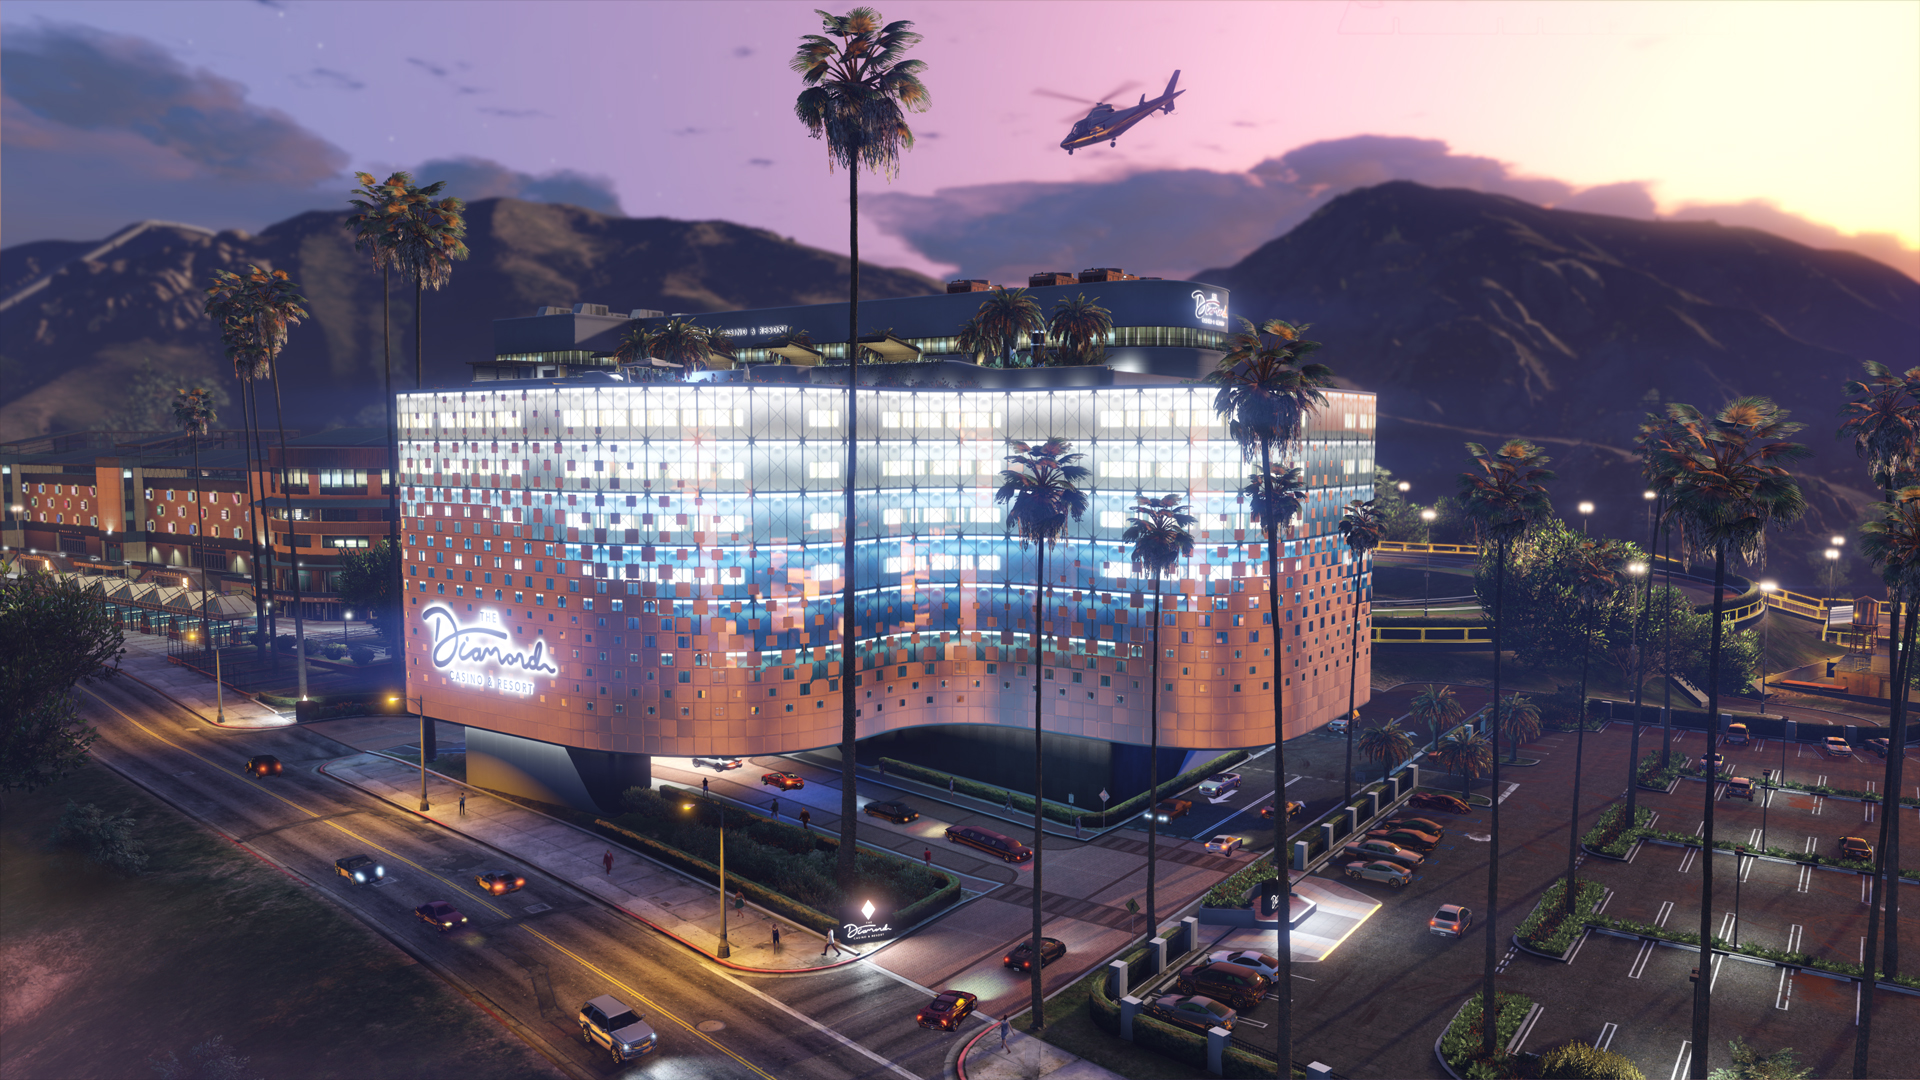 The GTA Online casino is open right now and it's time to lose some